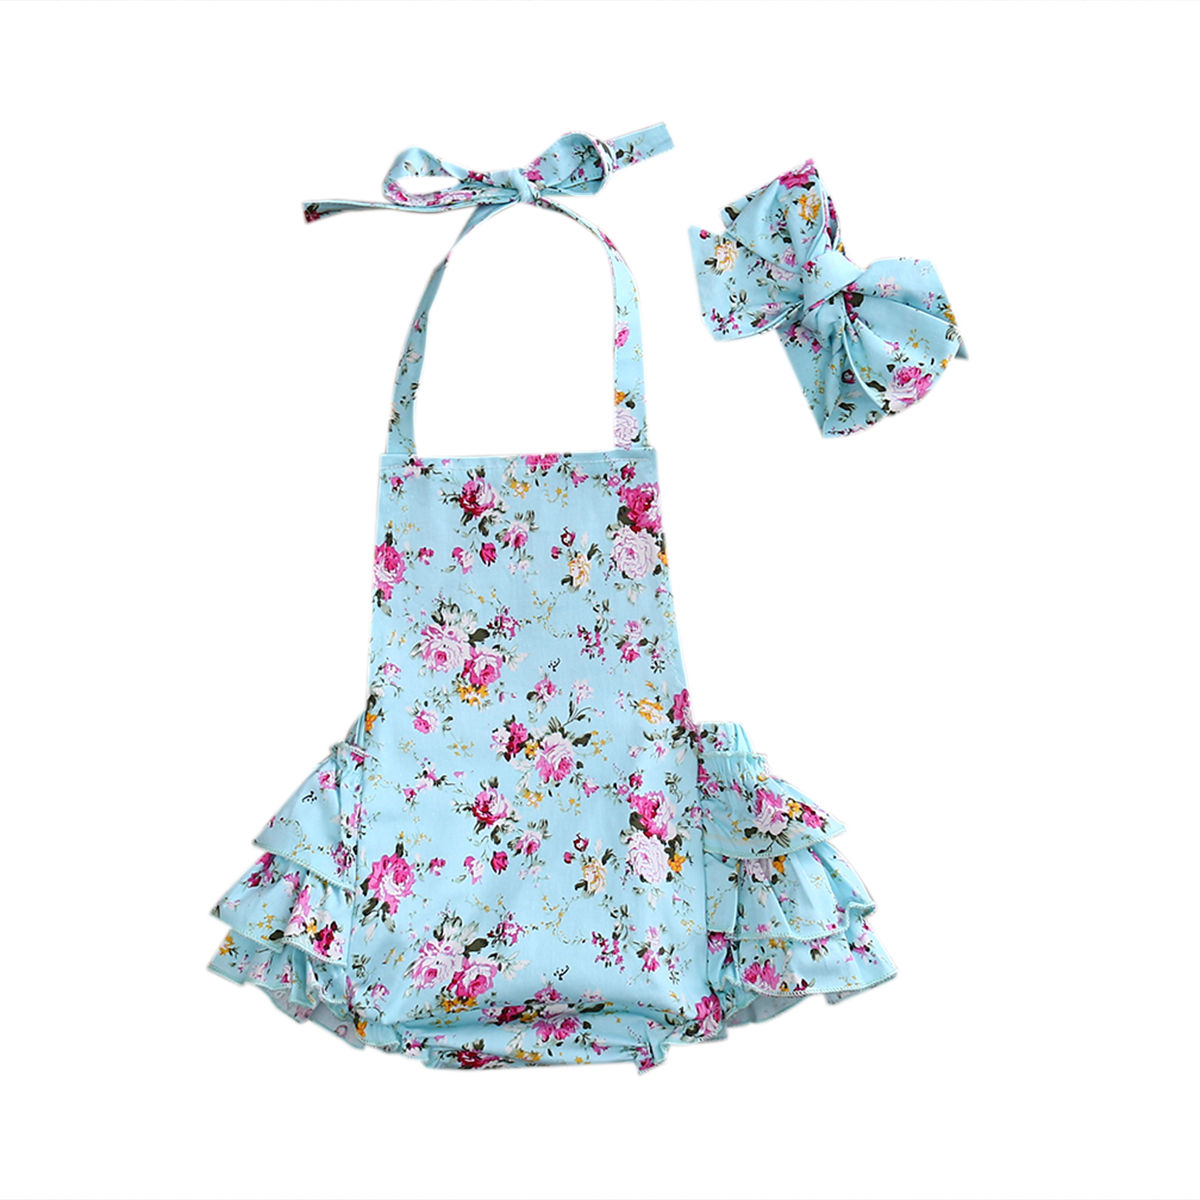 Summer Newborn Infant Baby Girls Floral Tiered Romper Jumpsuit Outfit Sunsuit Playsuit Belt Cotton Clothes fashion 2pcs set newborn baby girls jumpsuit toddler girls flower pattern outfit clothes romper bodysuit pants